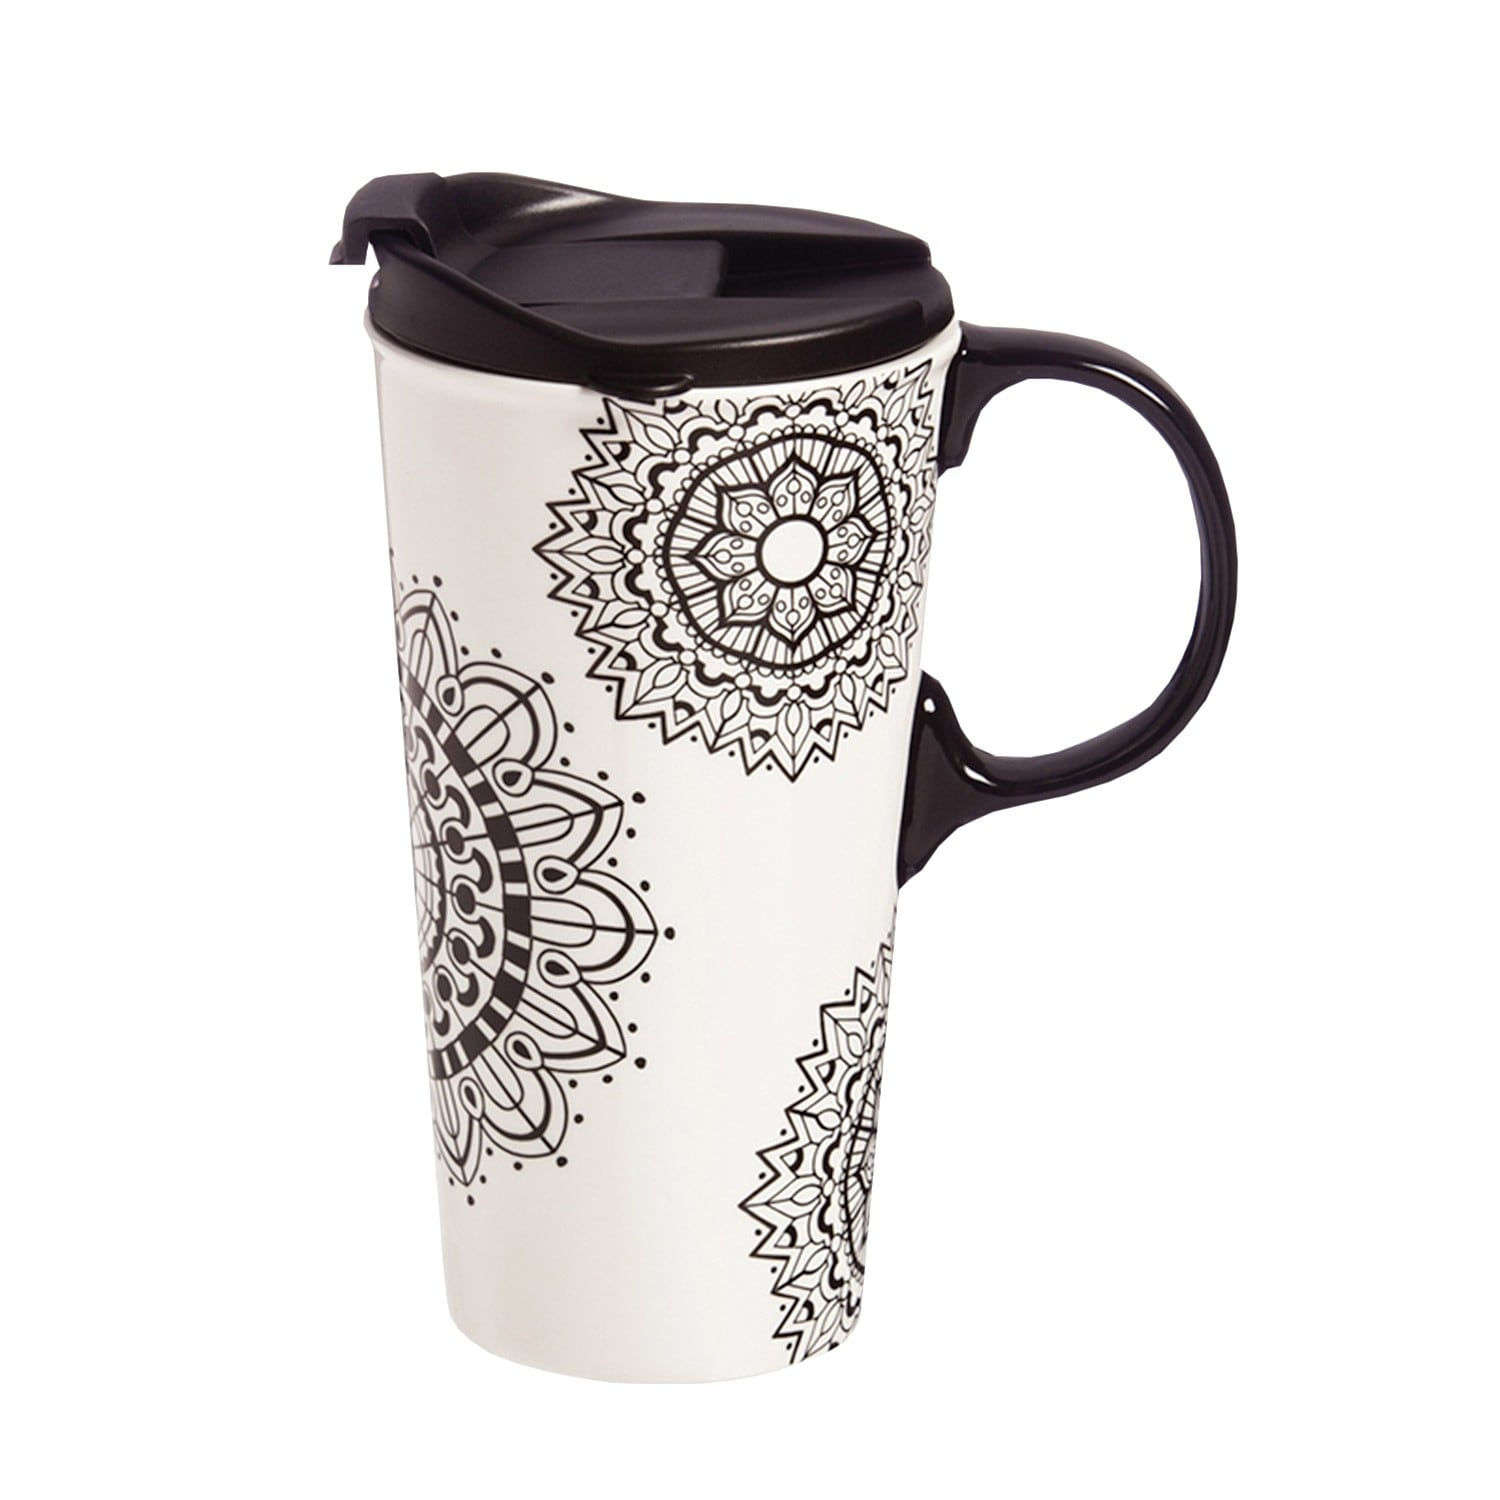 Cypress Home Color Your Own Mandala Travel Mug Diy Ceramic Coffee Cup With Silicone Lid 17 Oz 5 33 In Overstock 23054879